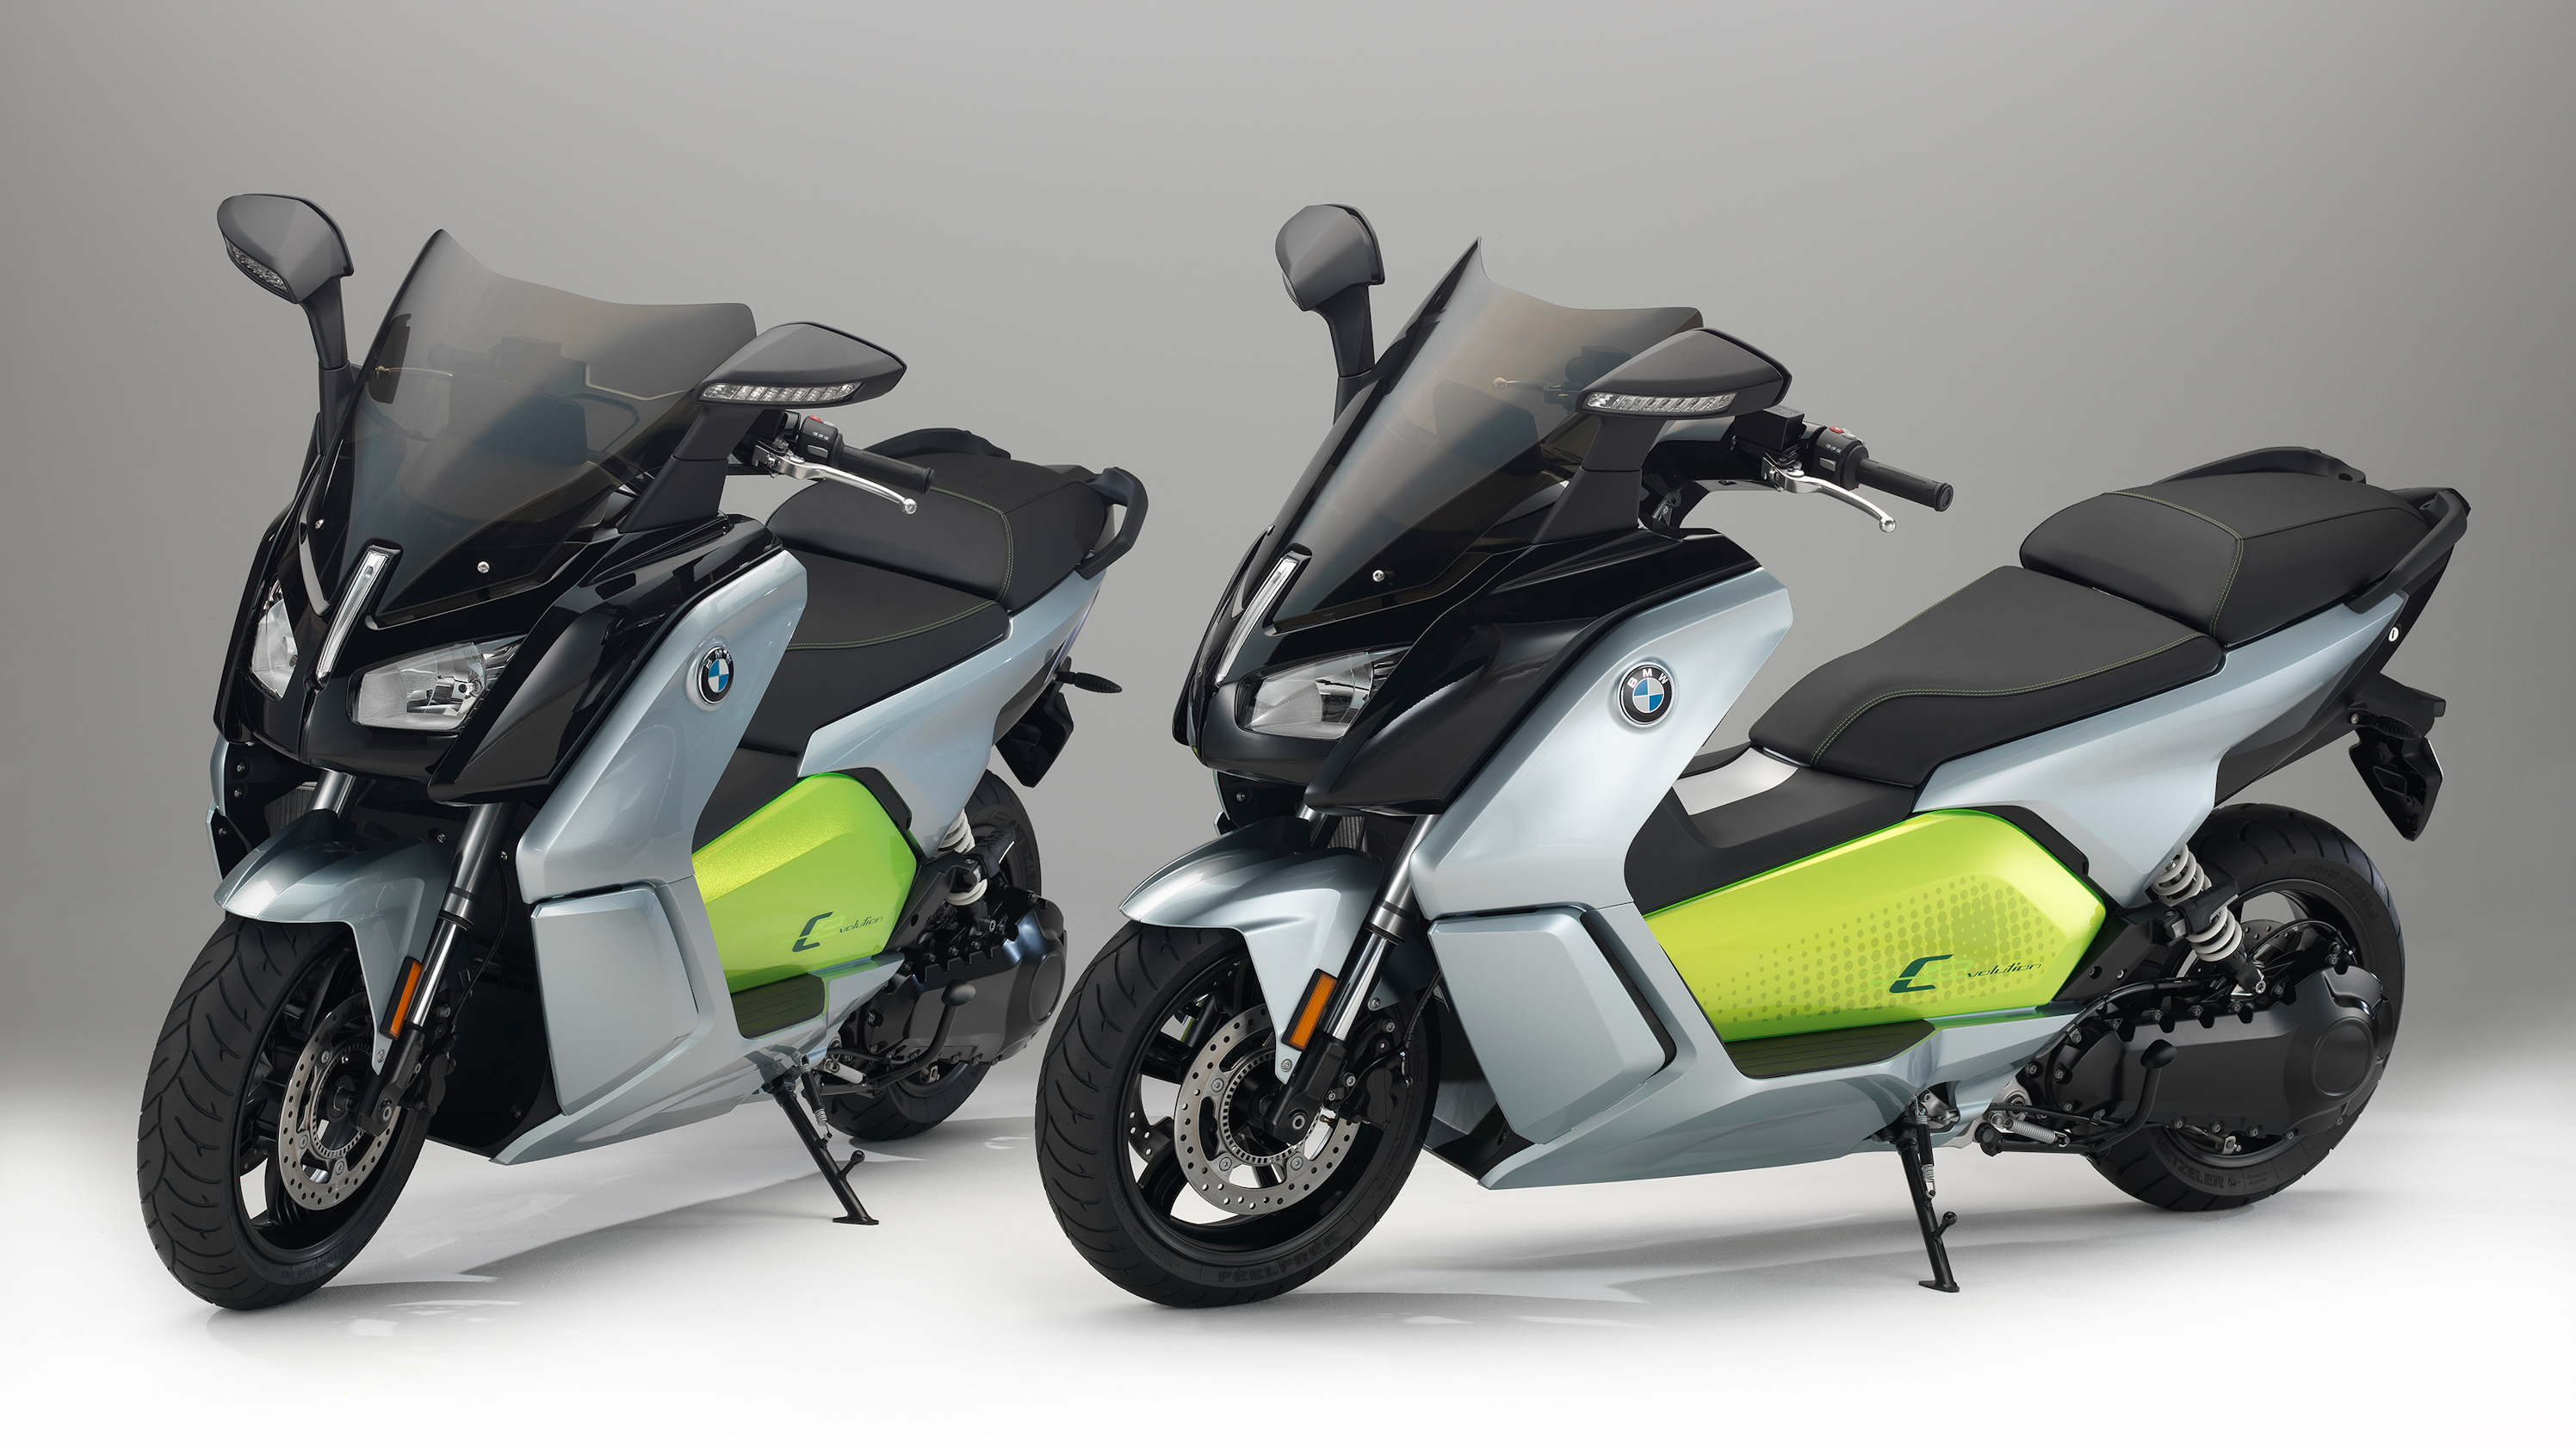 scooter motorcycles newbmwmotorcycles mini bmw inventory sandia new motorcycle